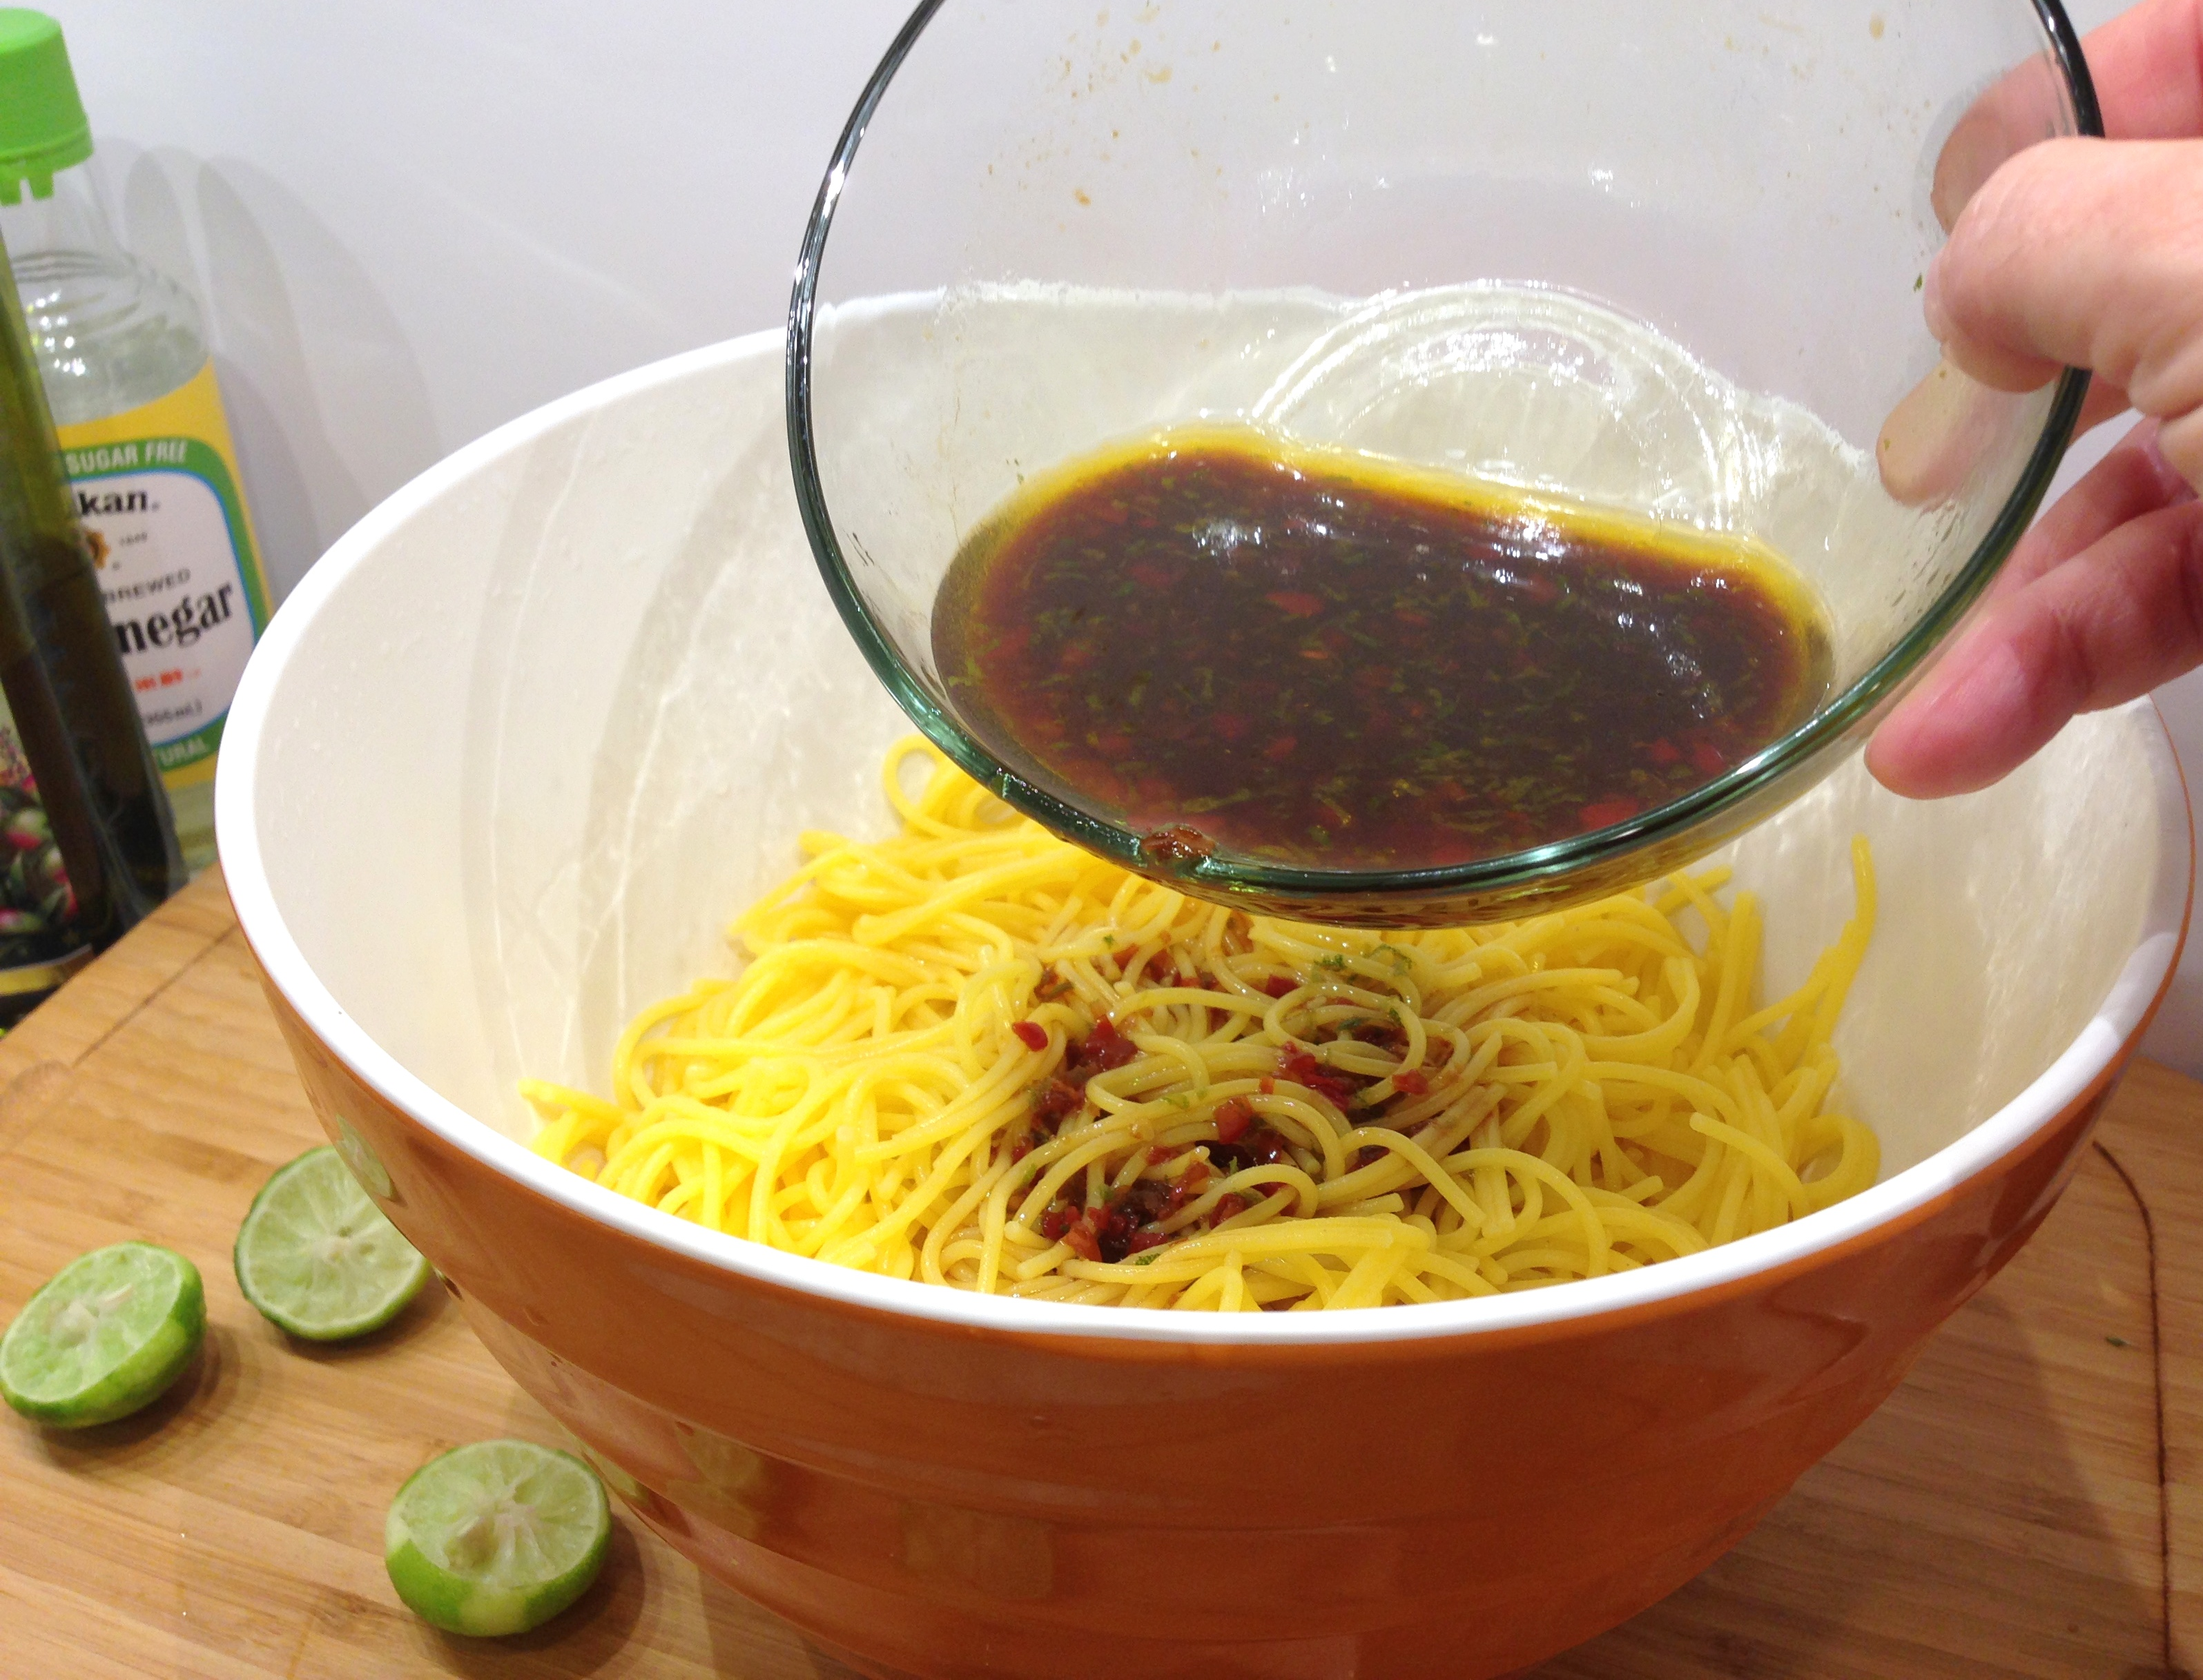 Toss noodles in dressing